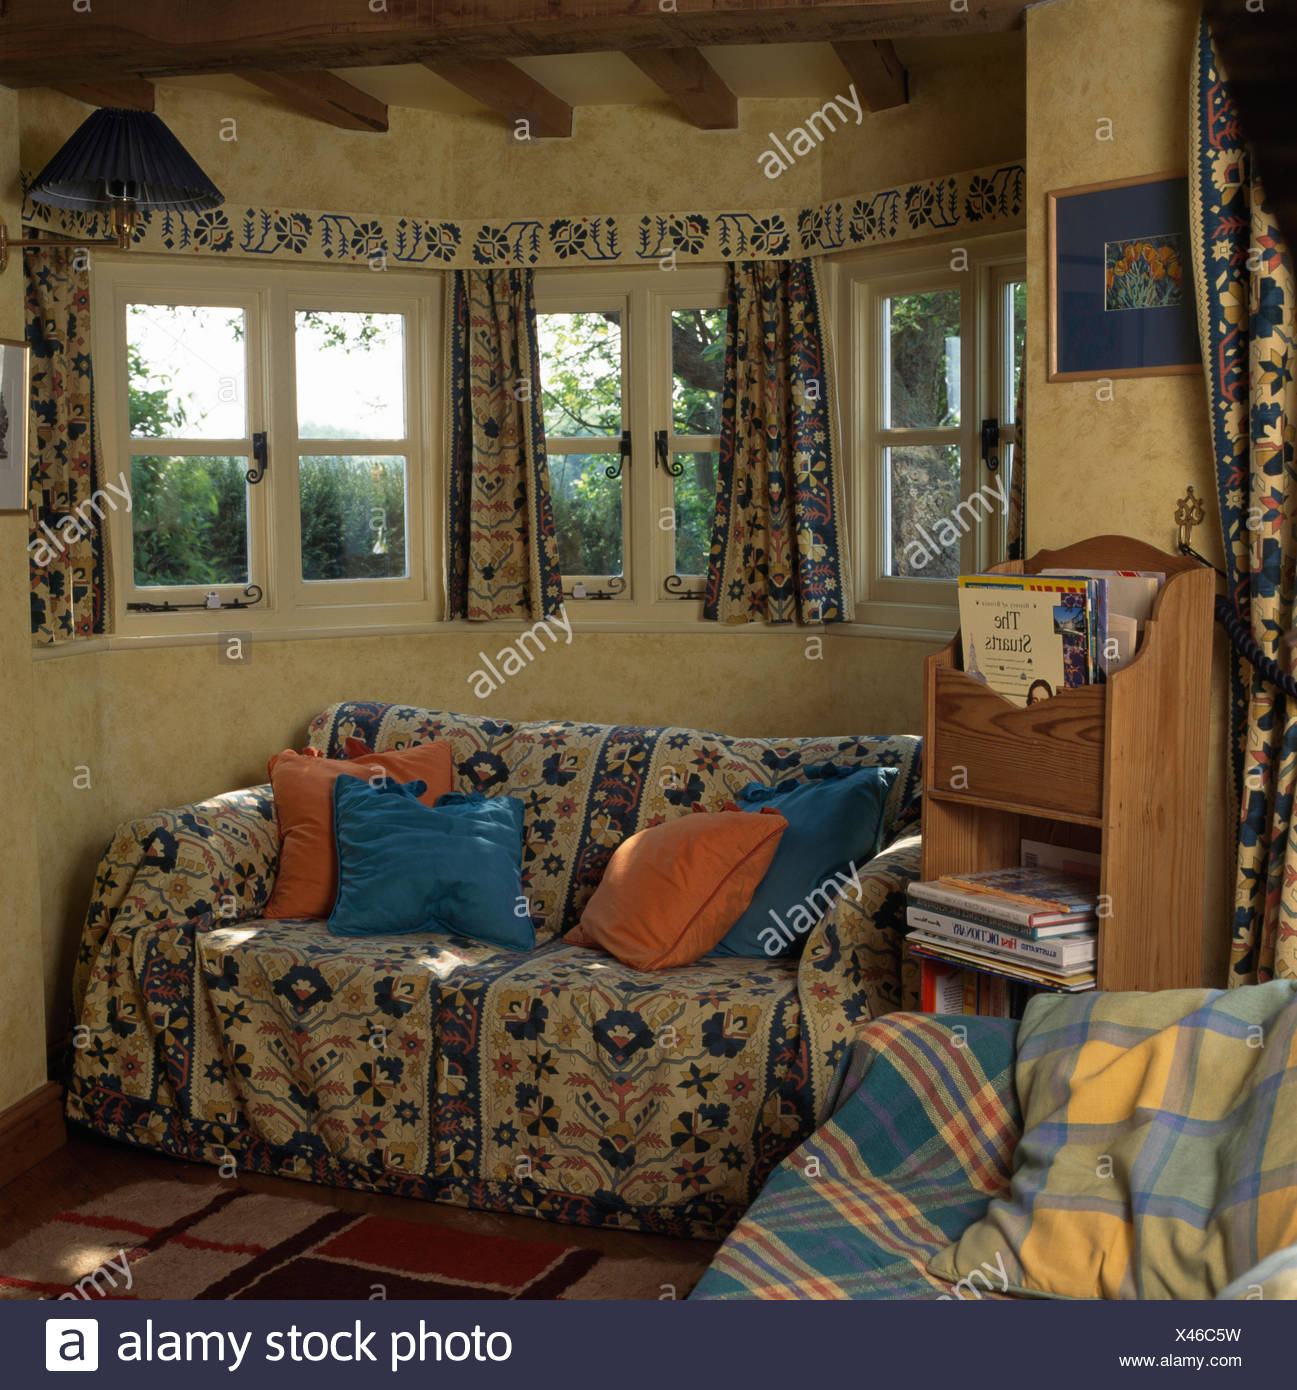 Floral patterned throw on sofa below windows in economy style cottage living room - Stock Image